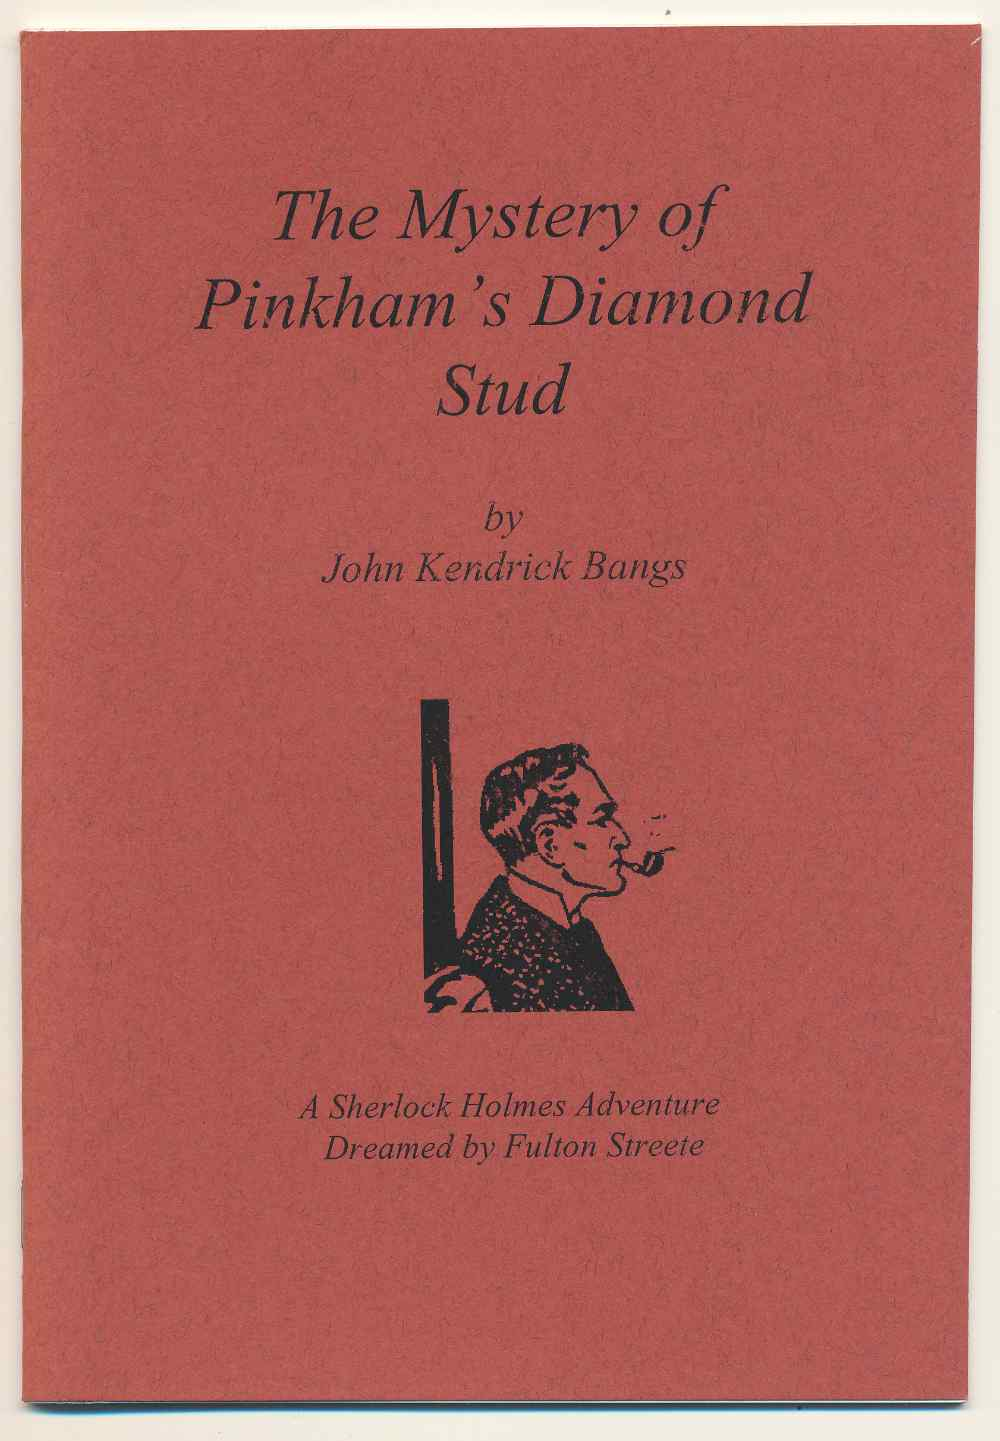 The mystery of Pinkham's diamond stud